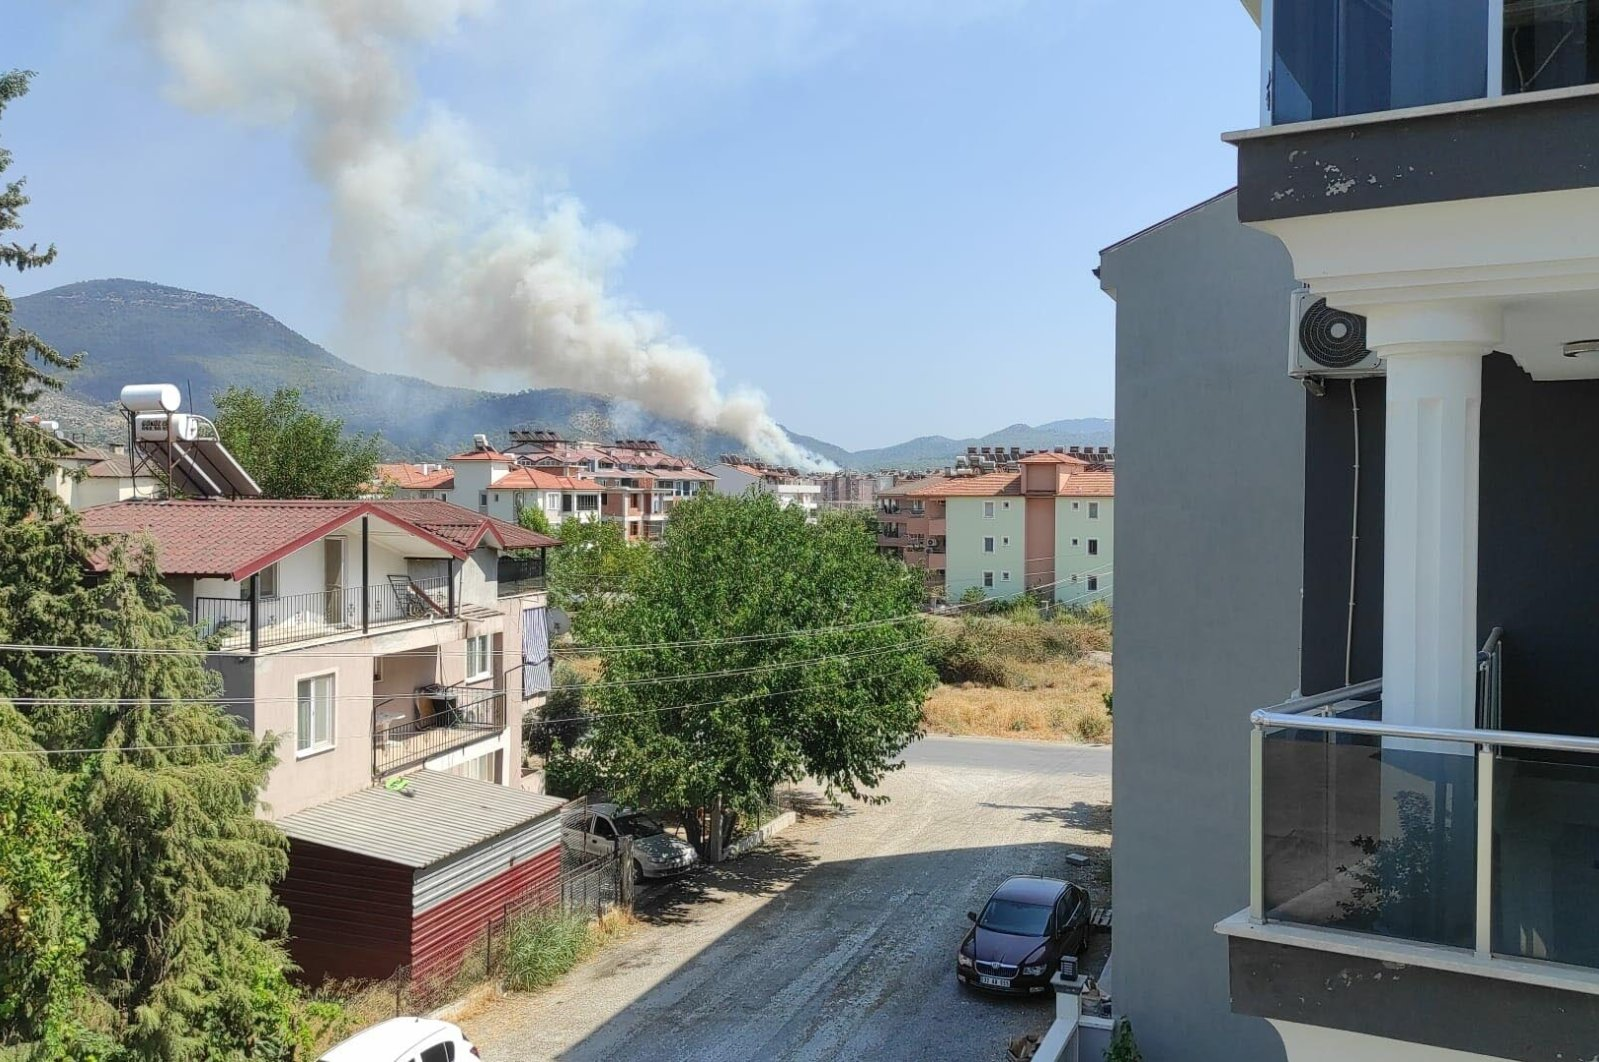 Smoke billows from a forest fire in Muğla's Dalaman on Aug. 8, 2021 (DHA Photo)